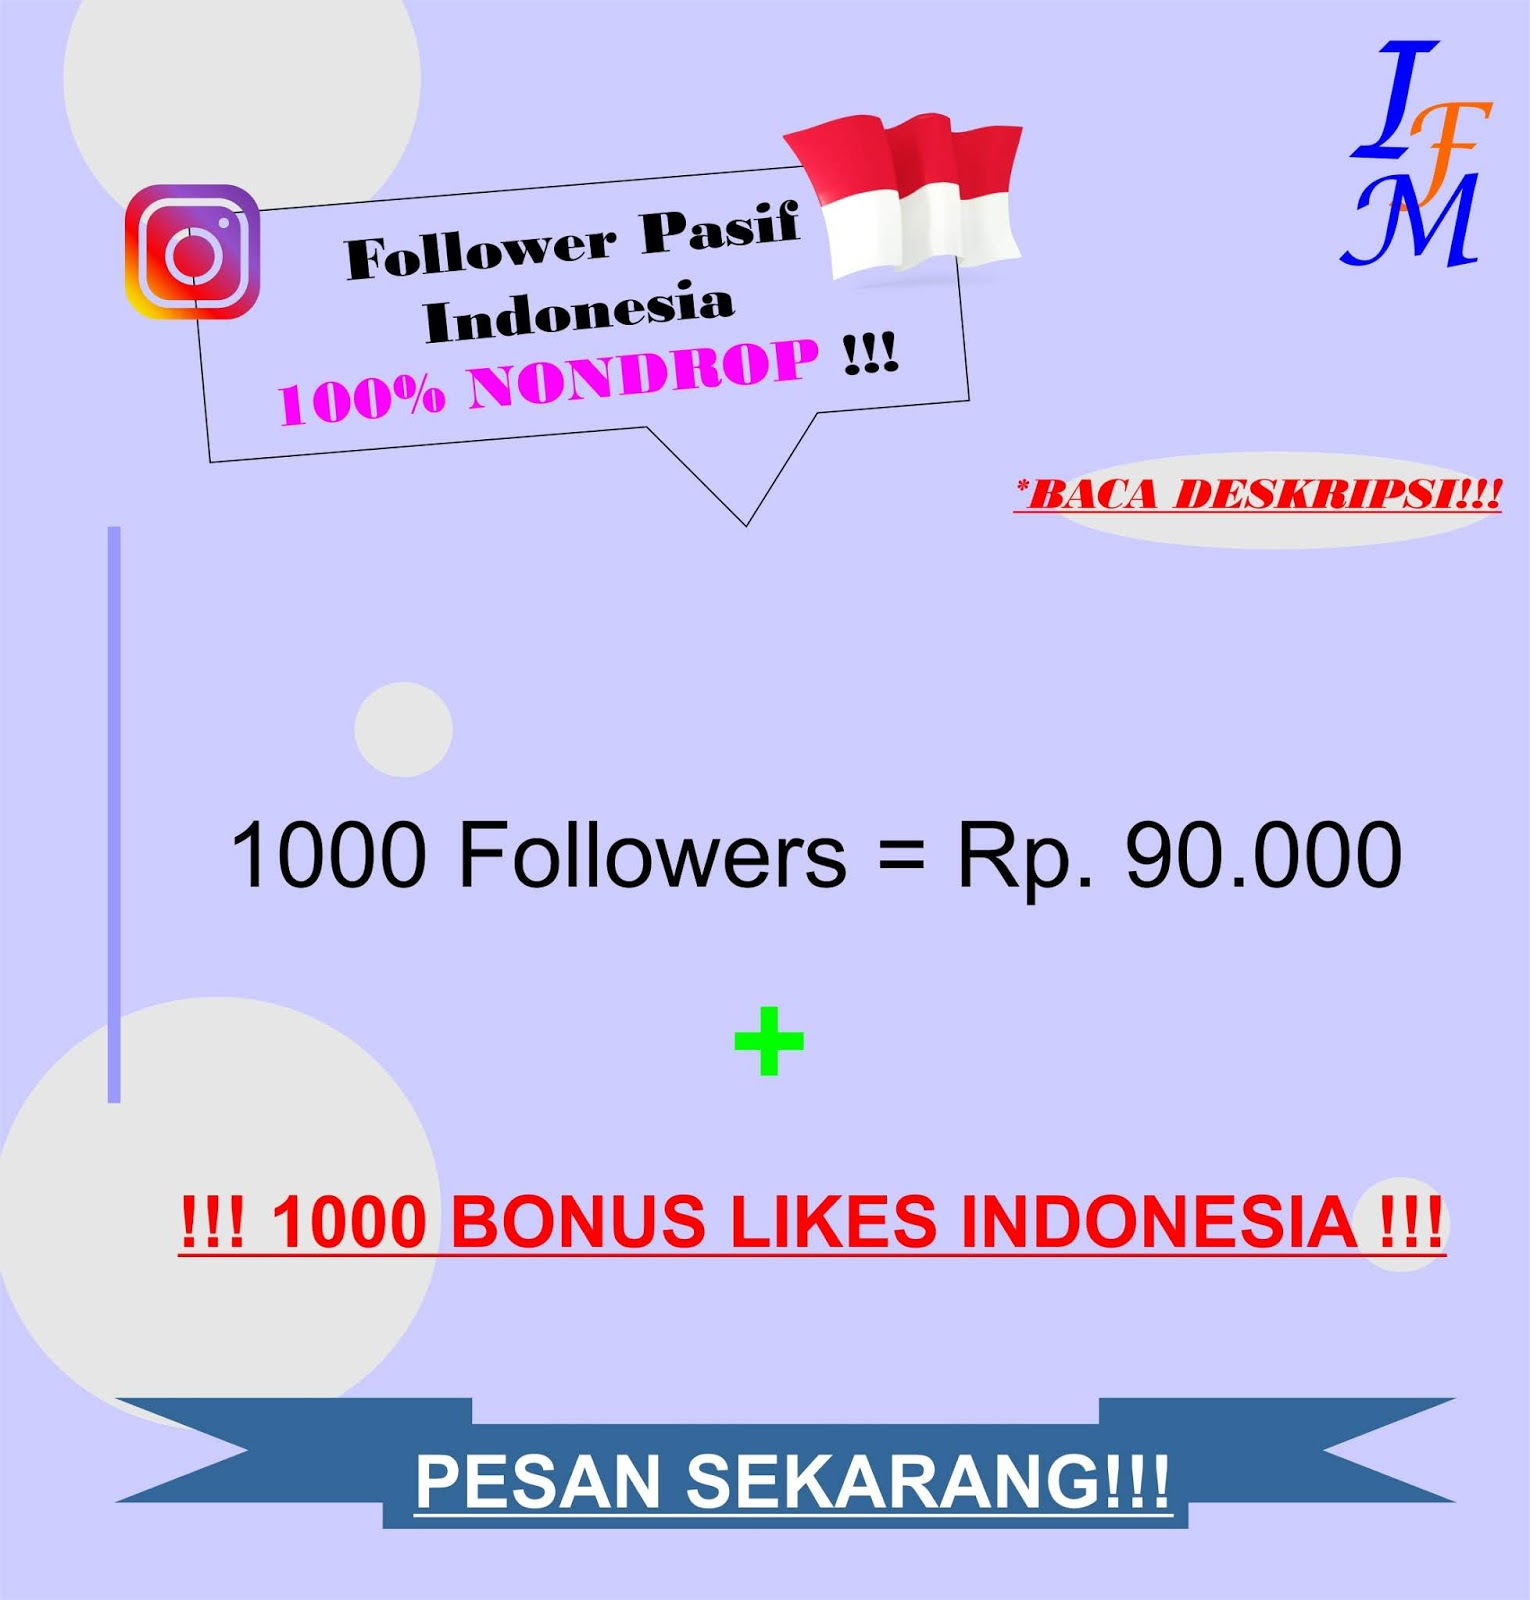 Jasa Tambah 1000 Follower Akun Instagram Pasif Original Indonesia 100% NONDROP Murah